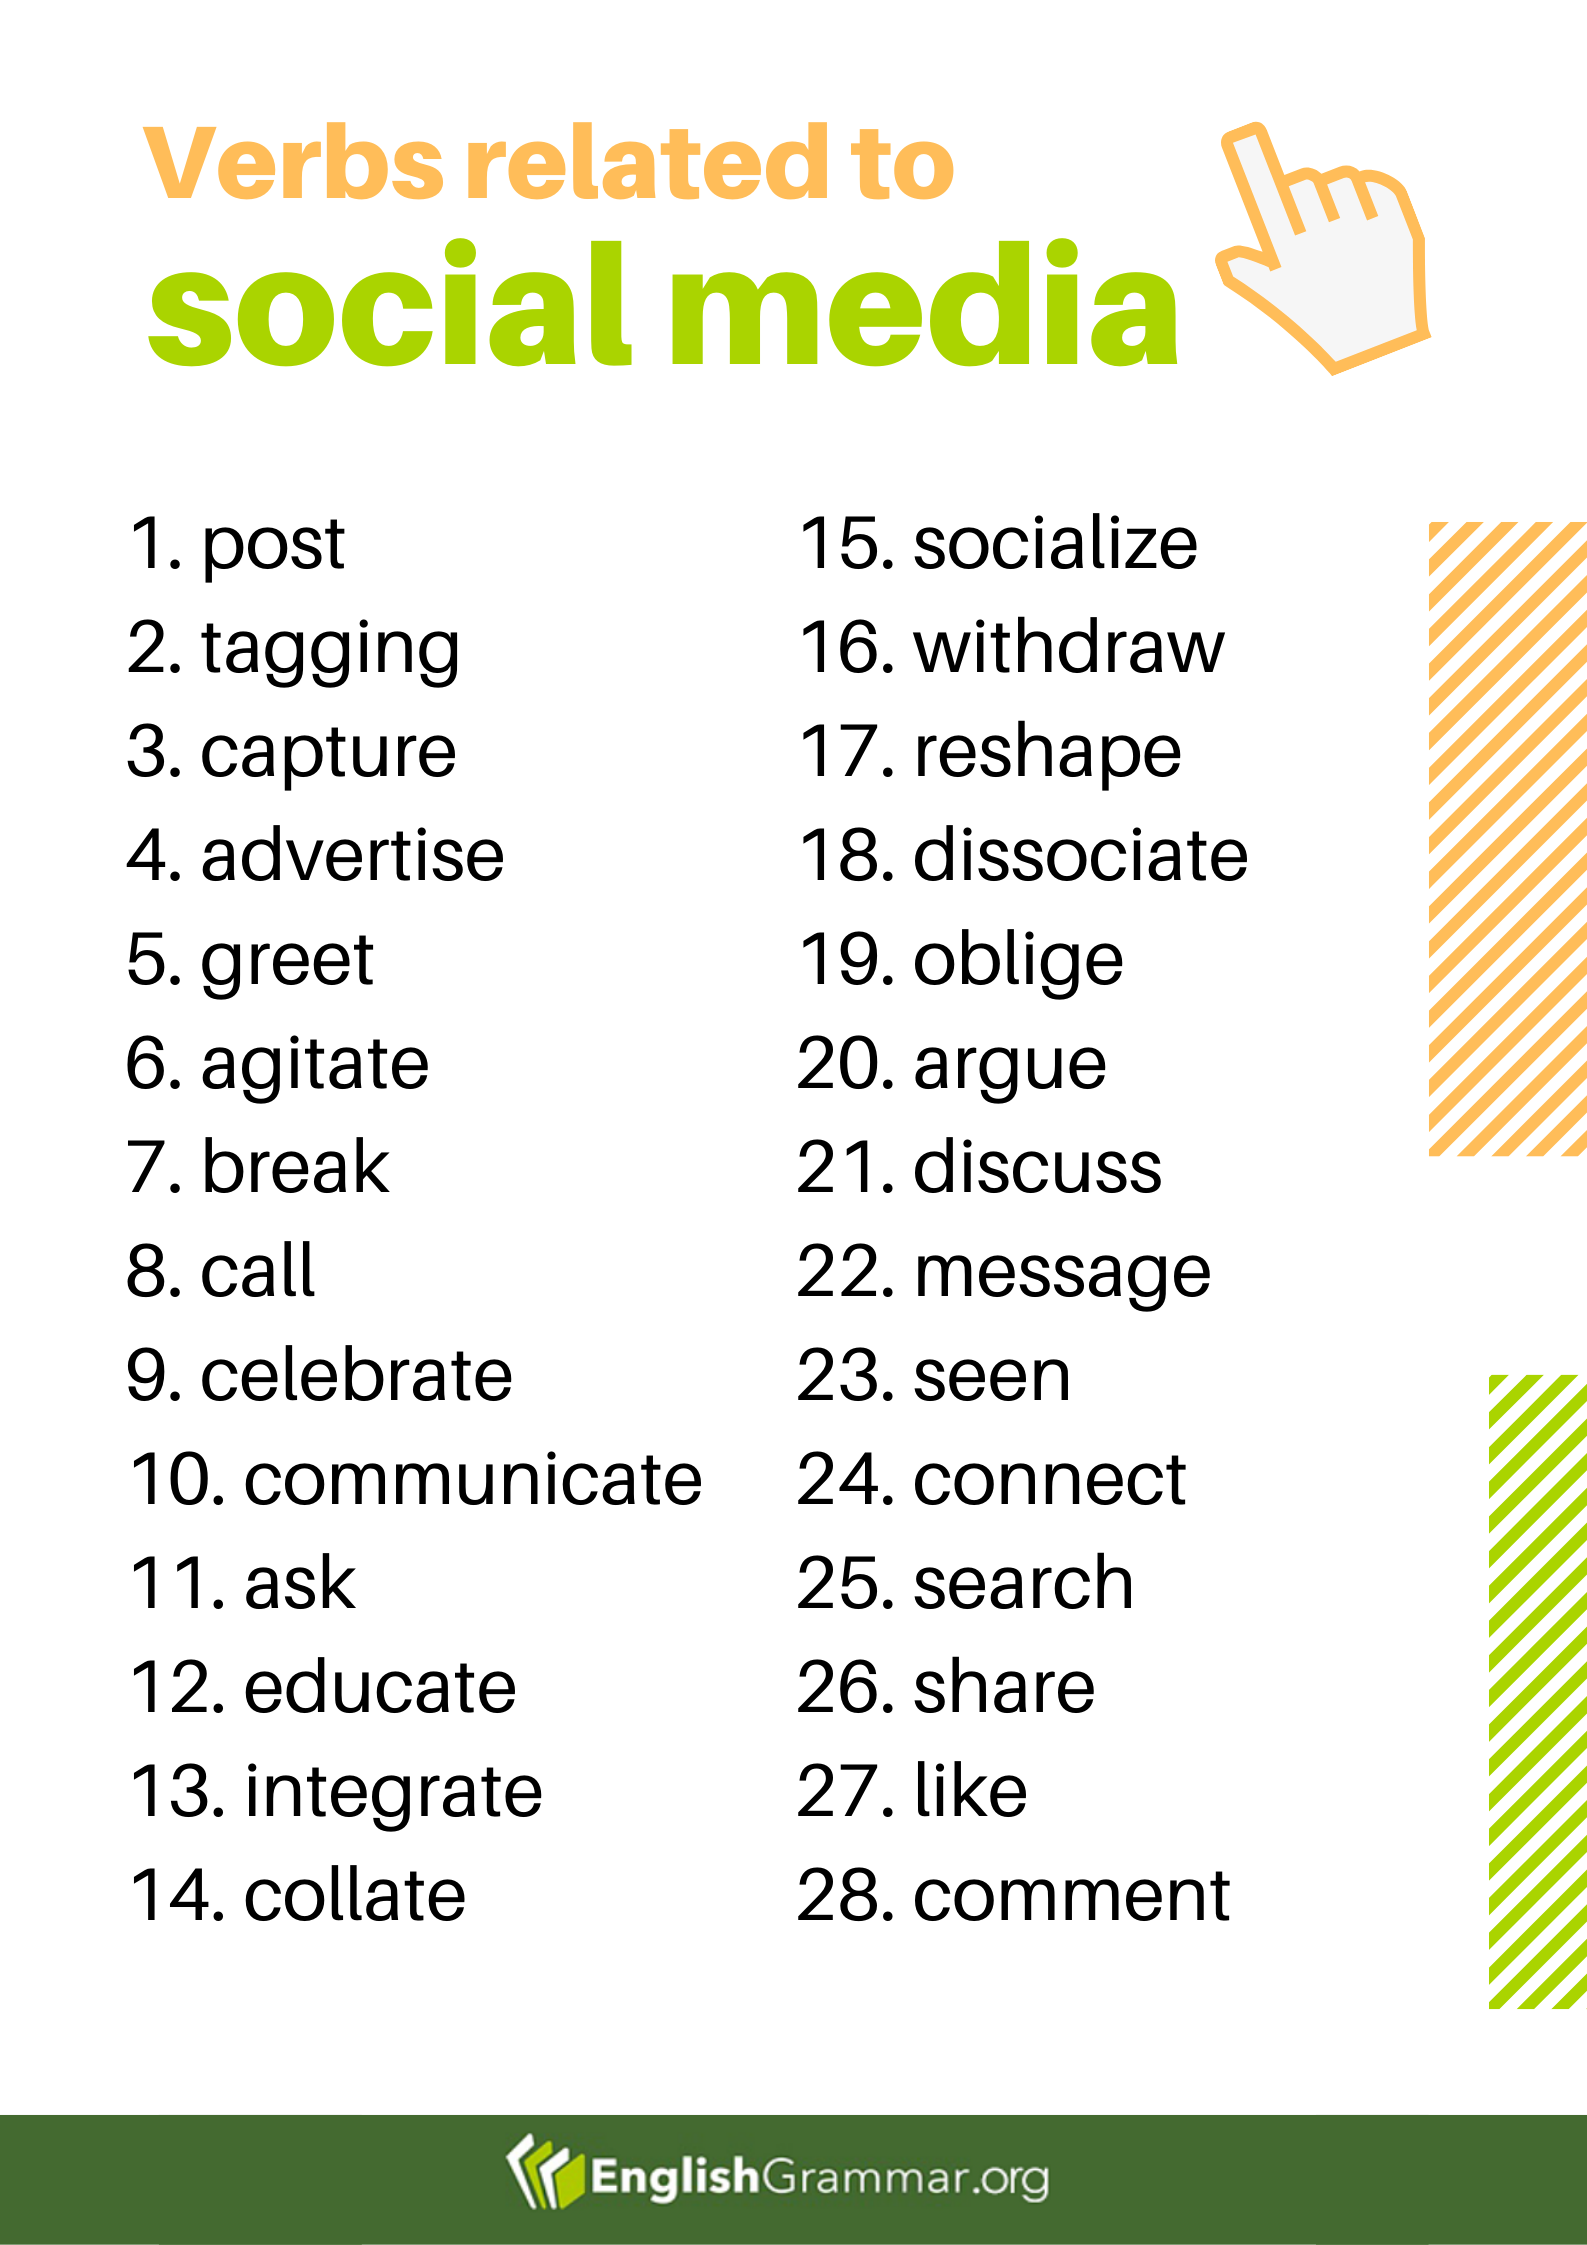 Verbs Related To Social Media In